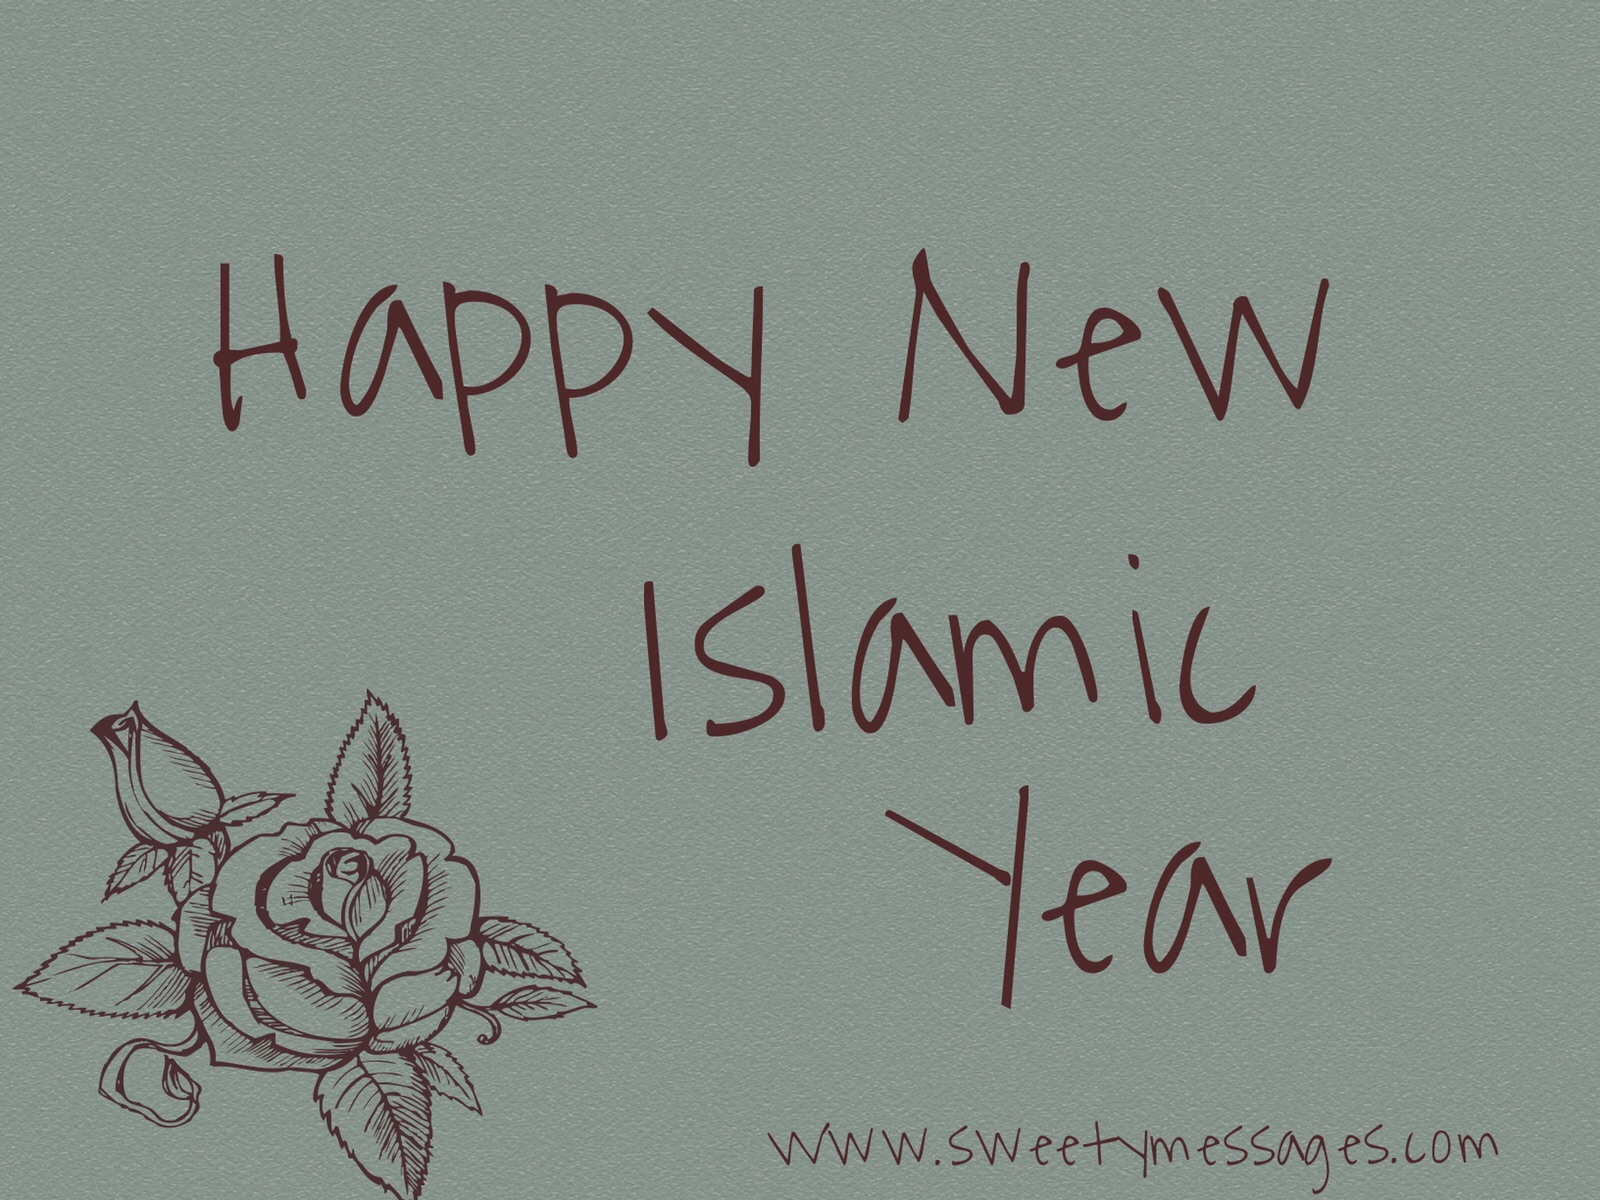 Islamic new year wishes quotes beautiful messages islamic new year images kristyandbryce Images